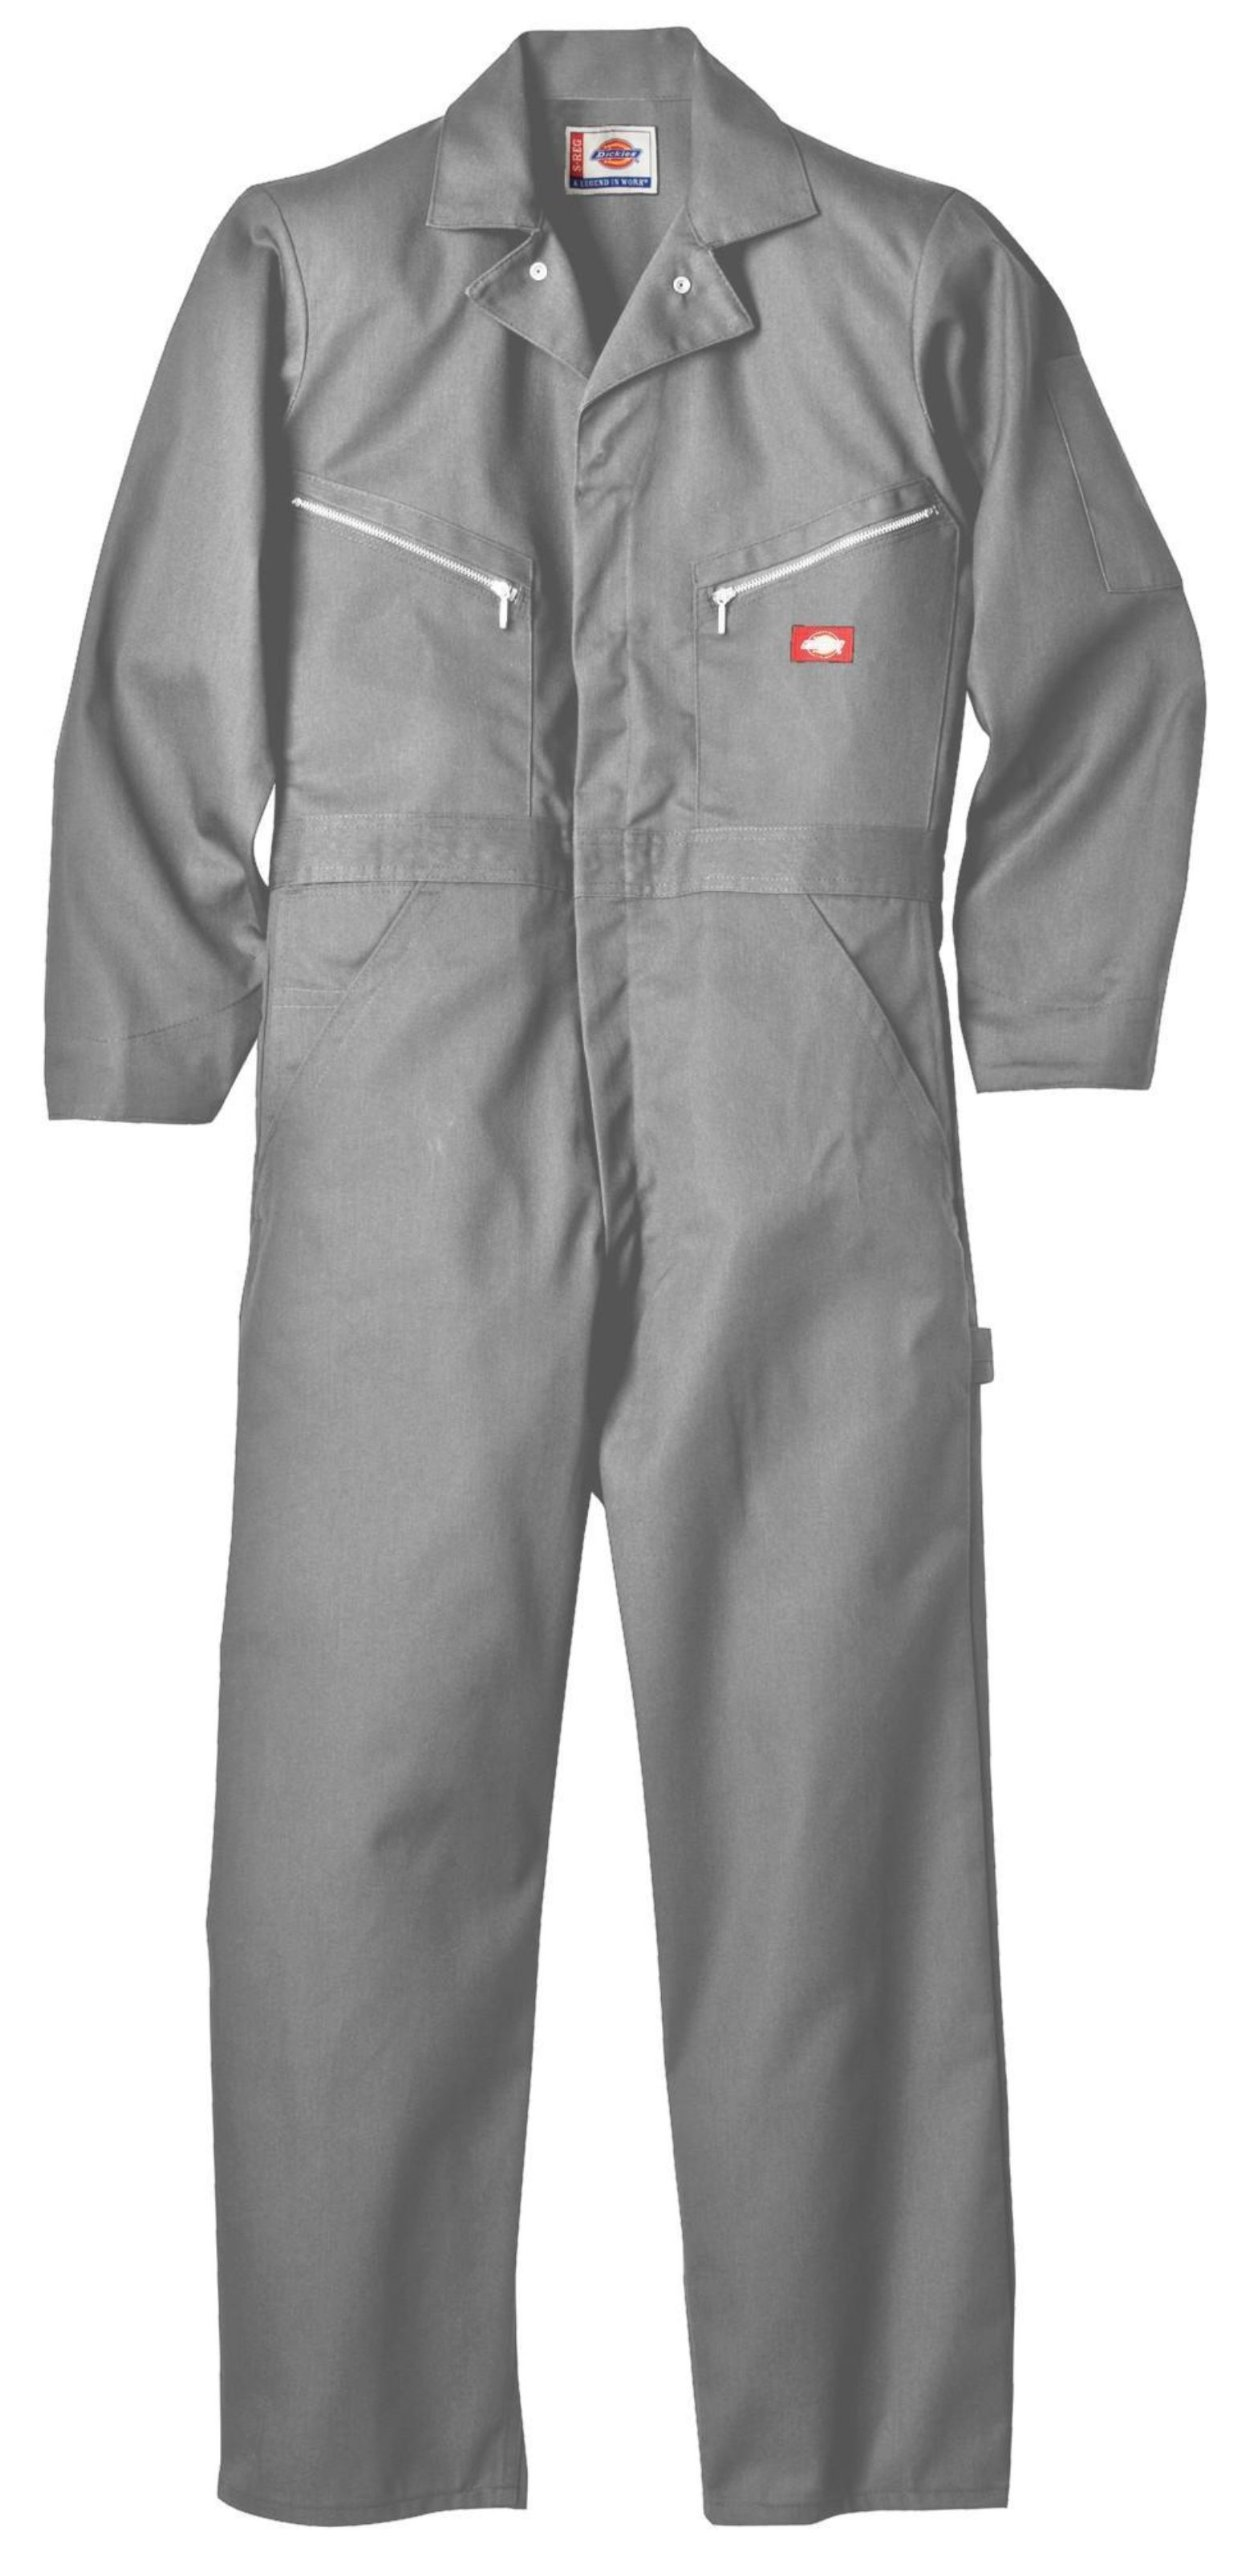 Dickies Men's 7 1/2 Ounce Twill Deluxe Long Sleeve Coverall, Gray, Medium Regular